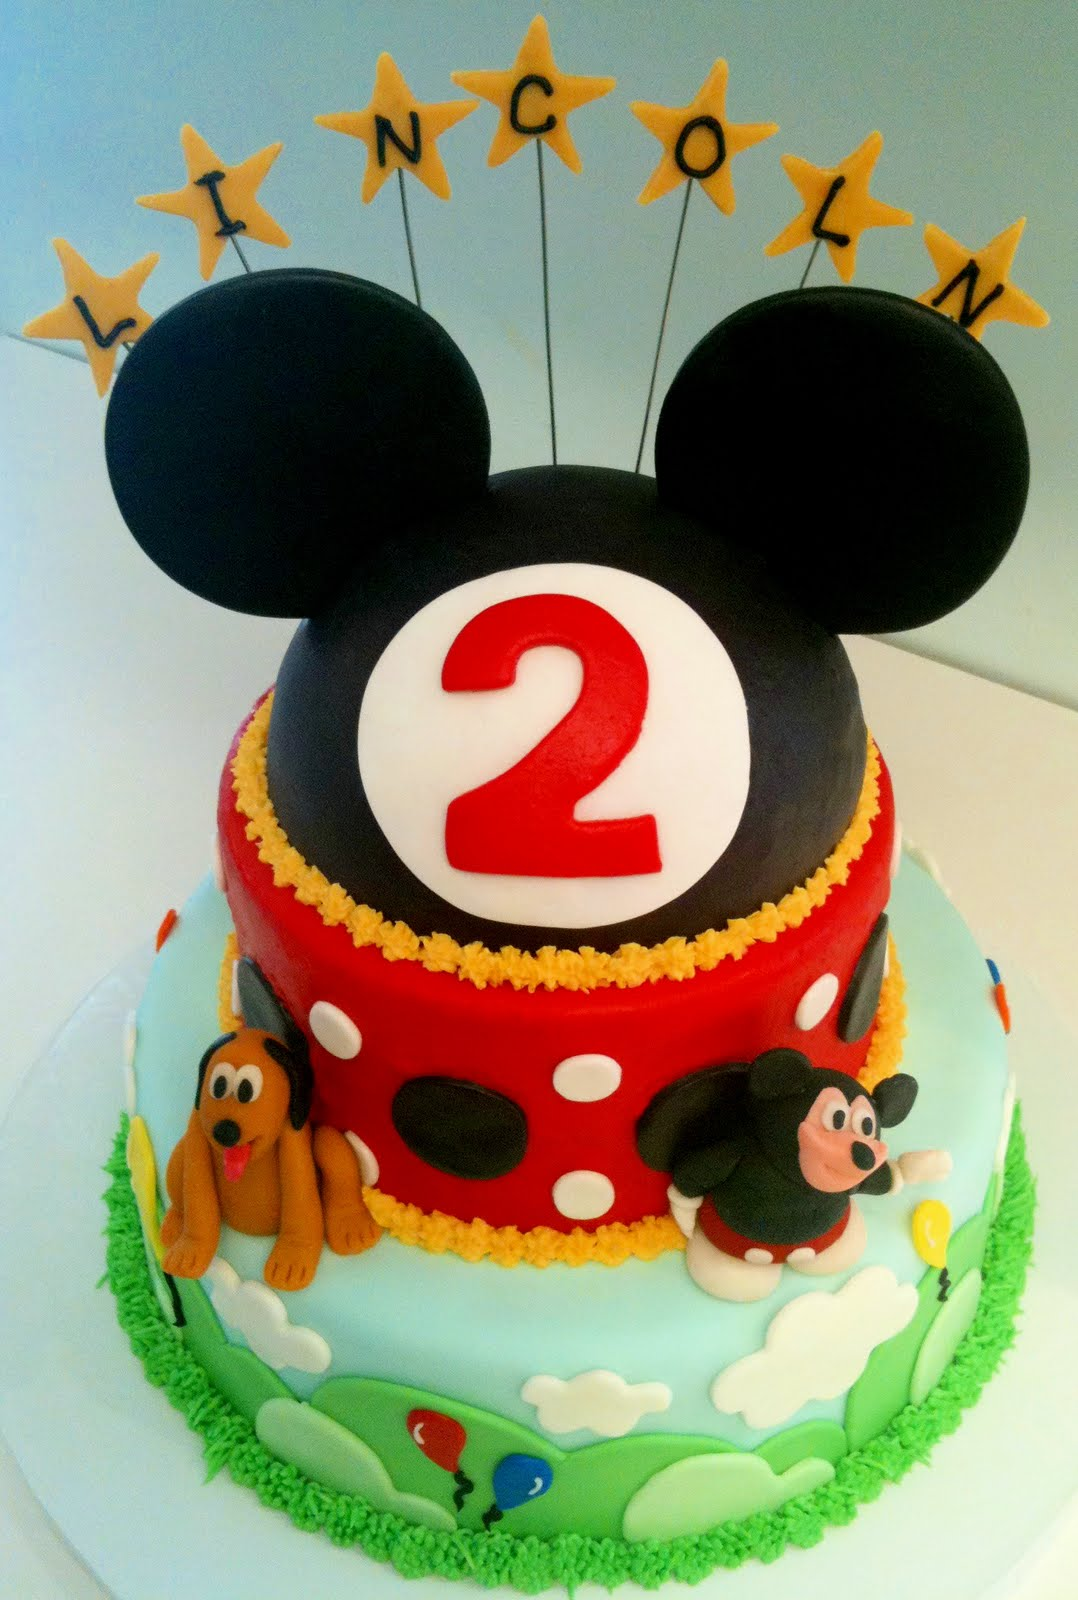 Mickey Mouse Images For Cake : MegMade Cakes: Lincoln s Mickey Mouse cake